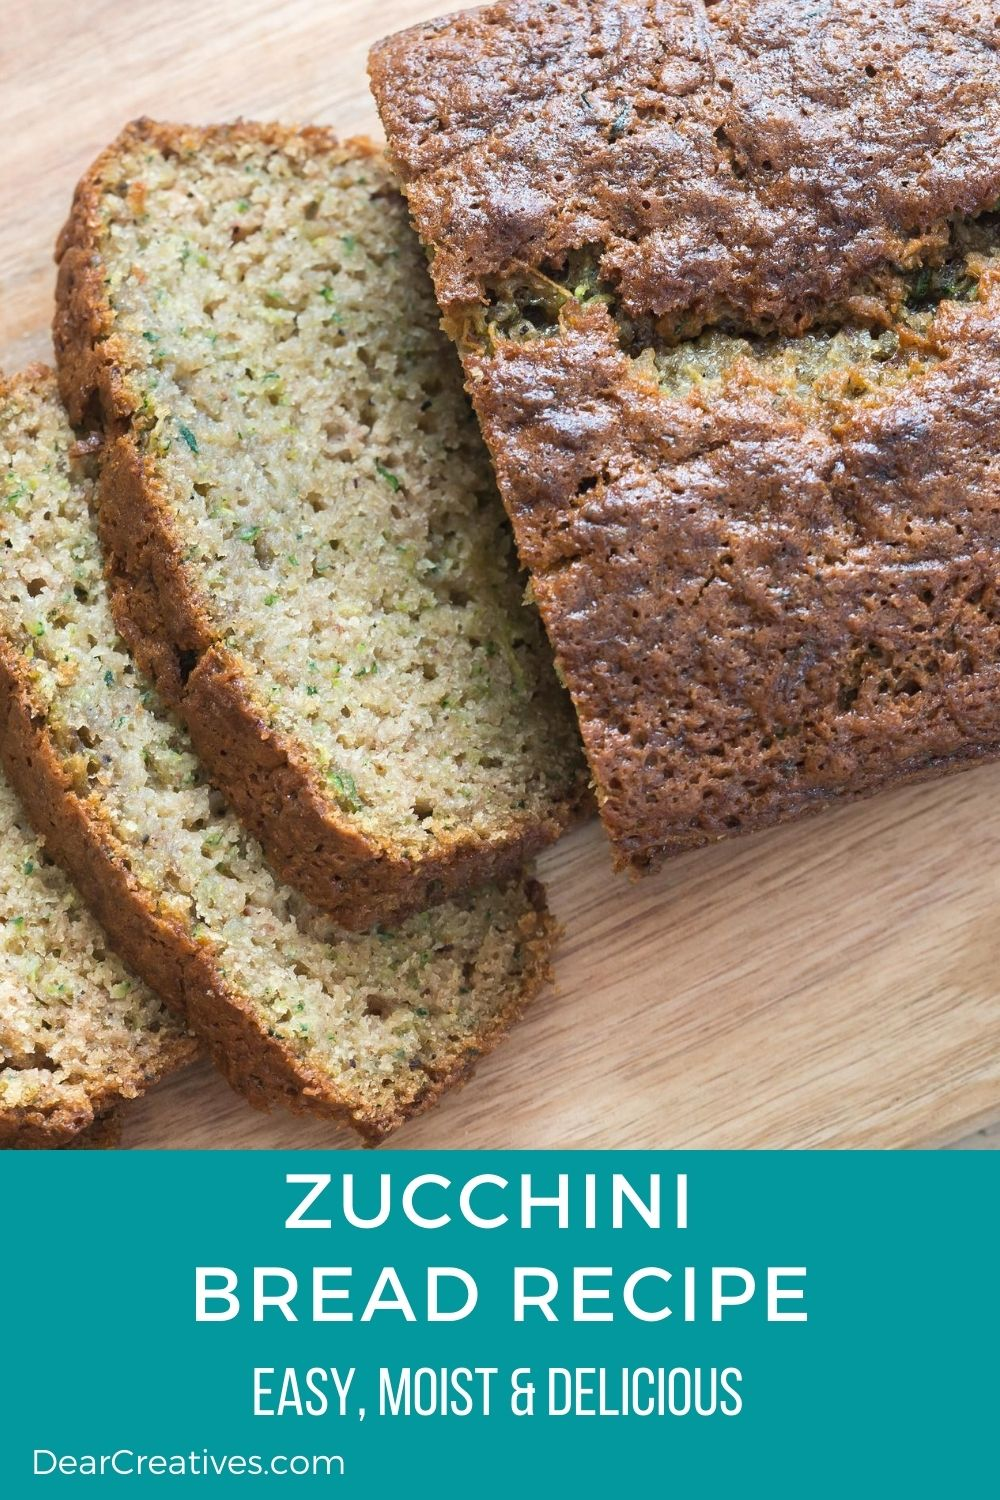 Zucchini Bread Recipe Moist, Delicious And Easy to Make!